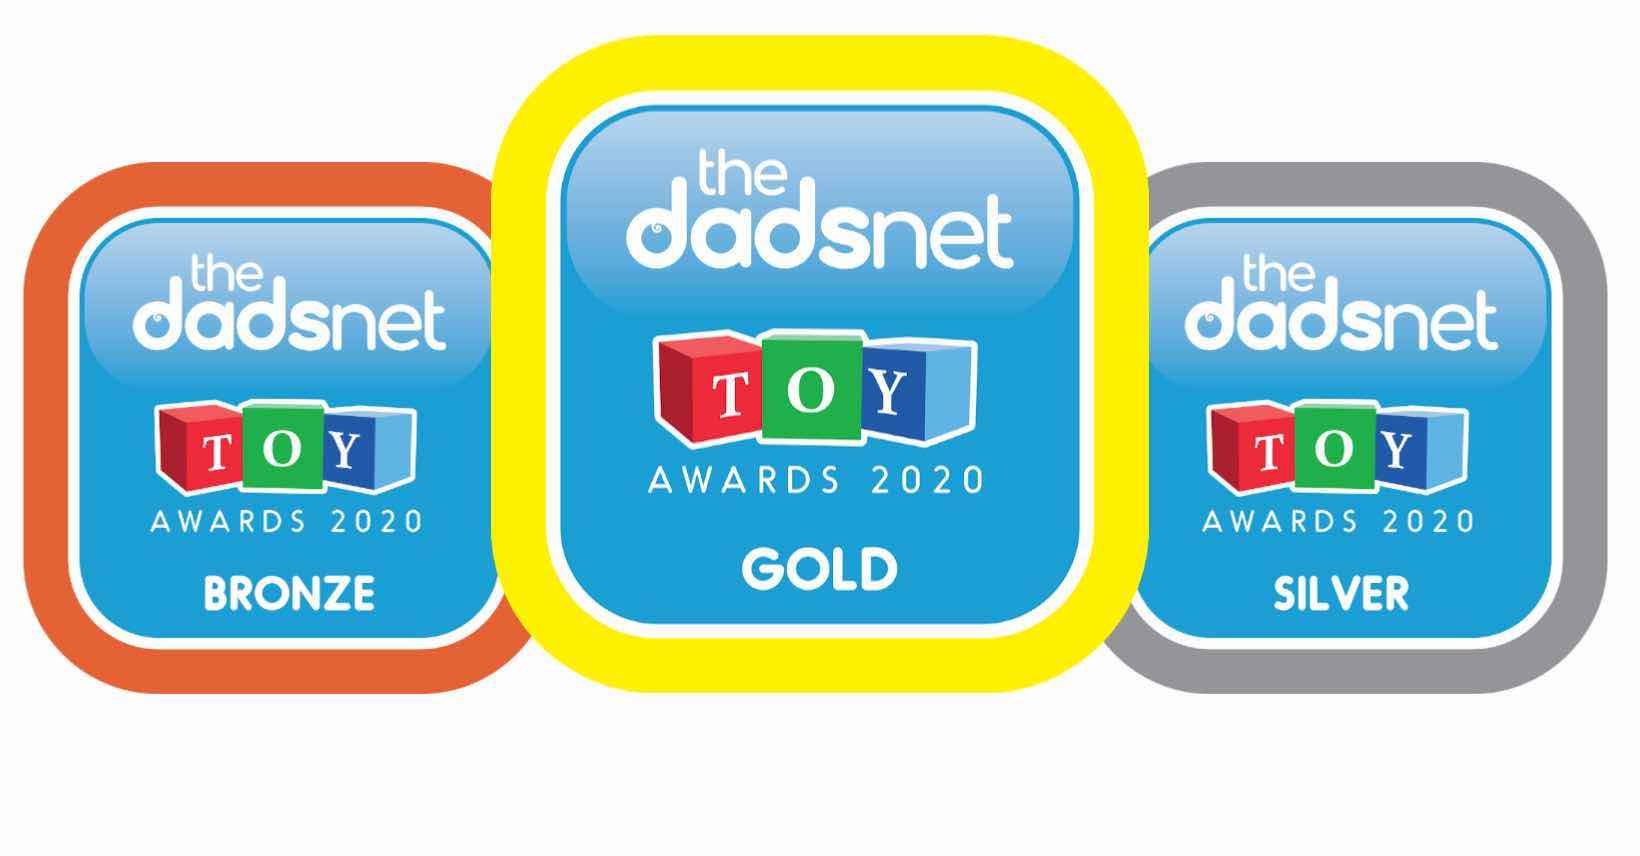 Dadsnet Toy Awards 2020 Winners Revealed, Toy Awards 2020 Badges 2%, product-review%